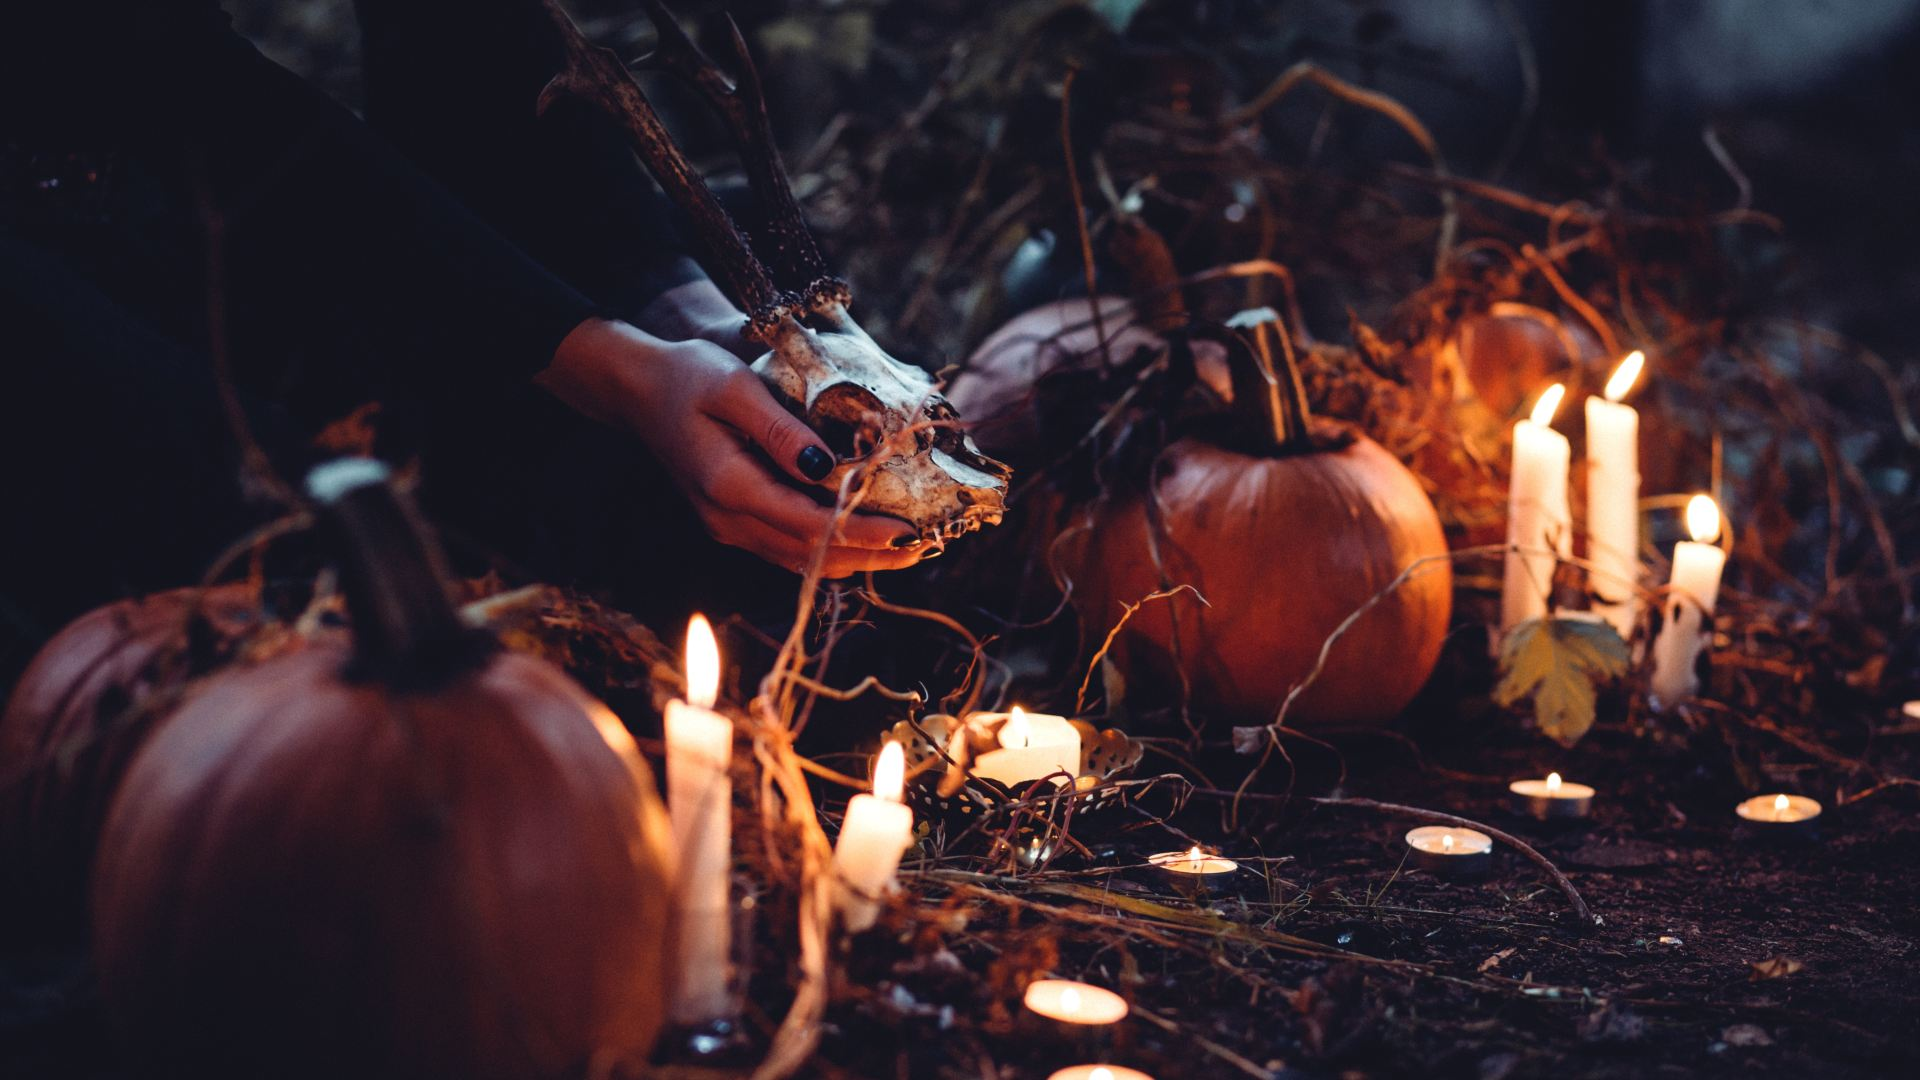 person decorating pumpkin and candles